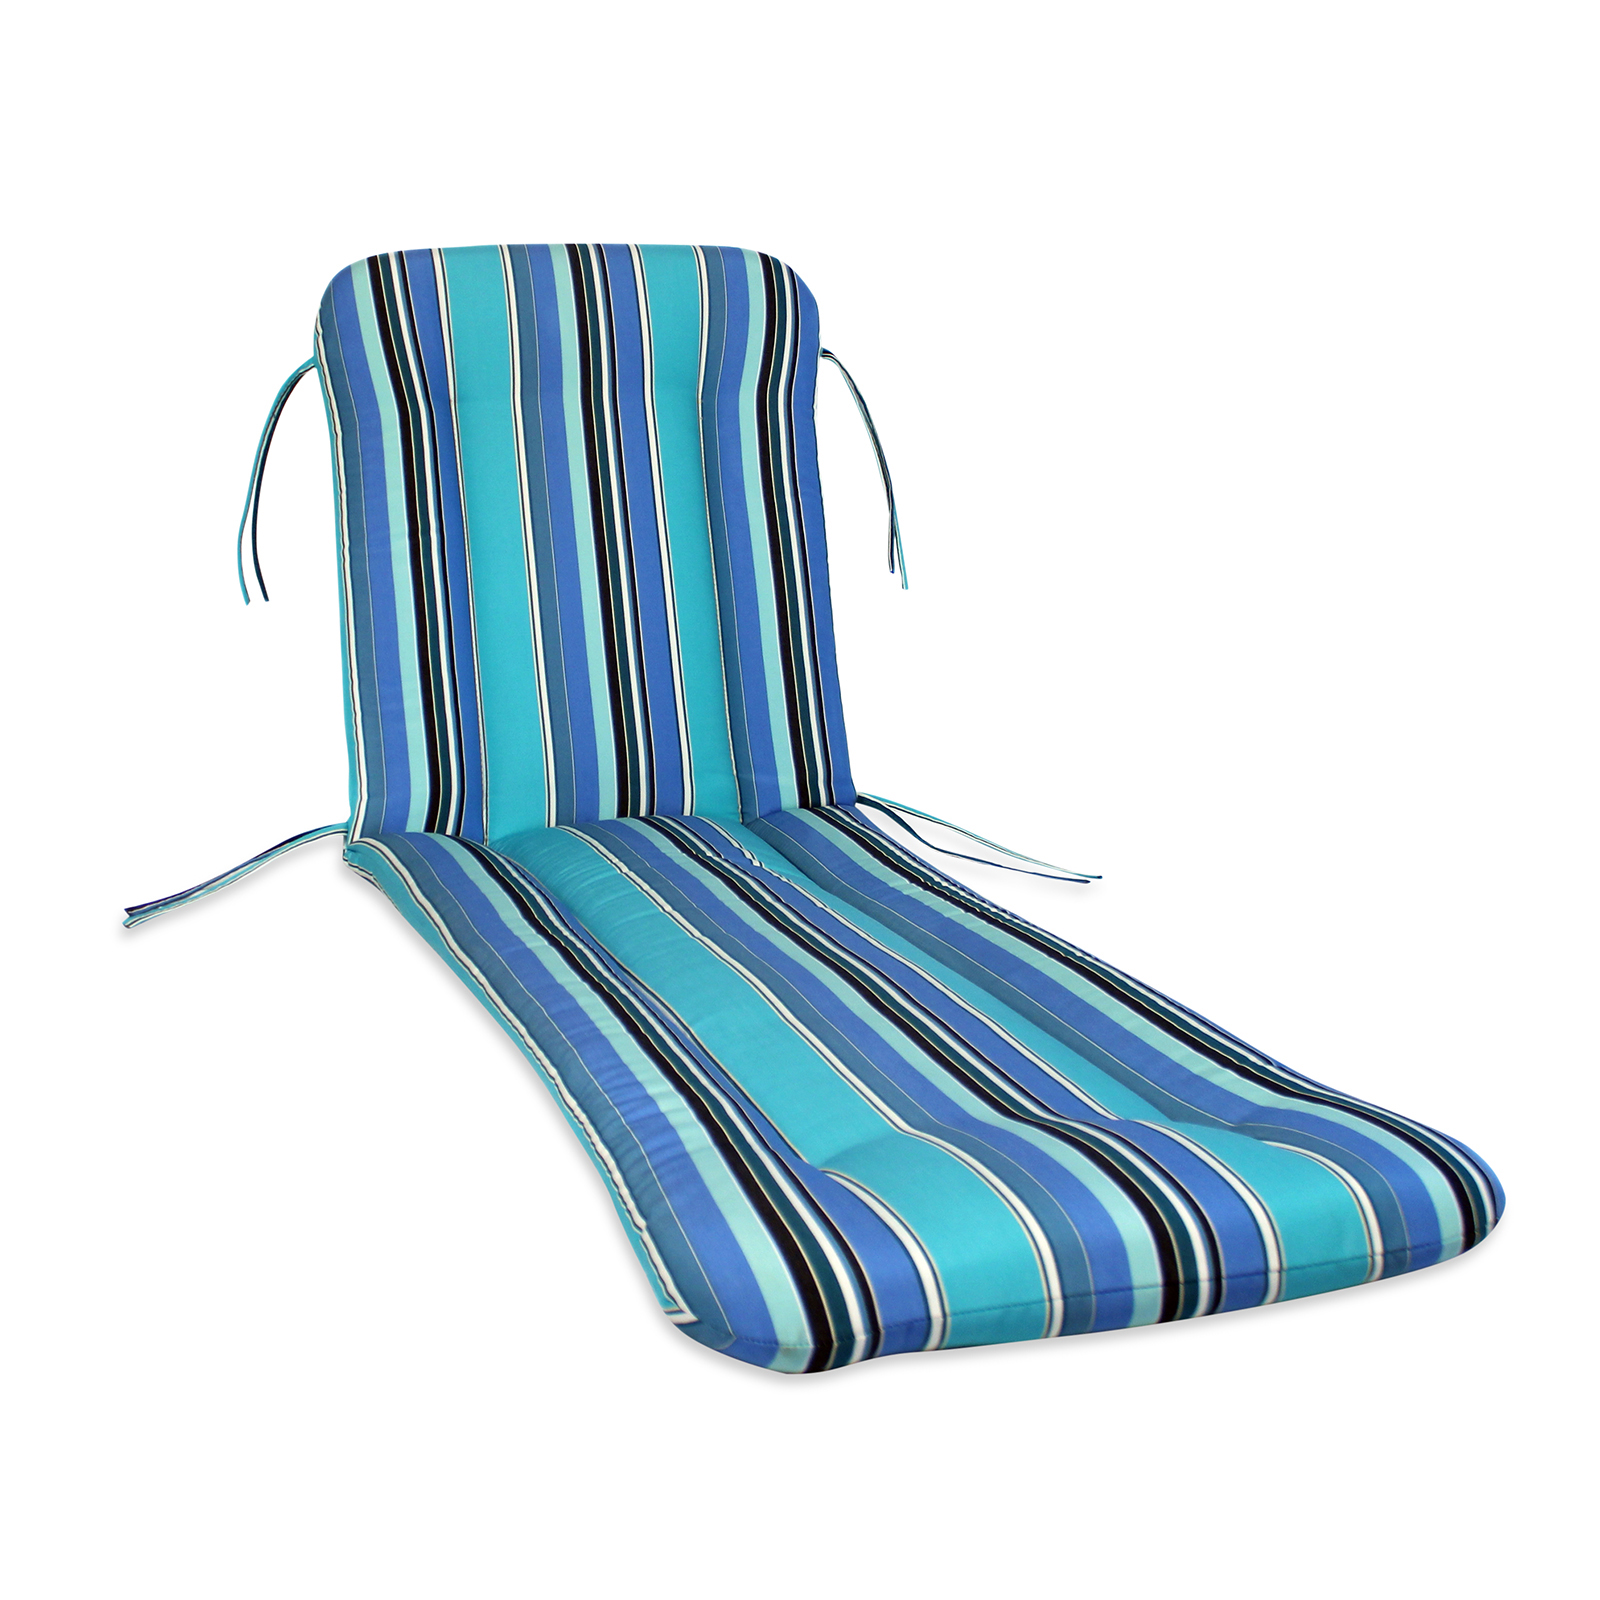 Charming Comfort Classics Sunbrella Chaise Lounge Cushion   Outdoor Cushions At  Hayneedle